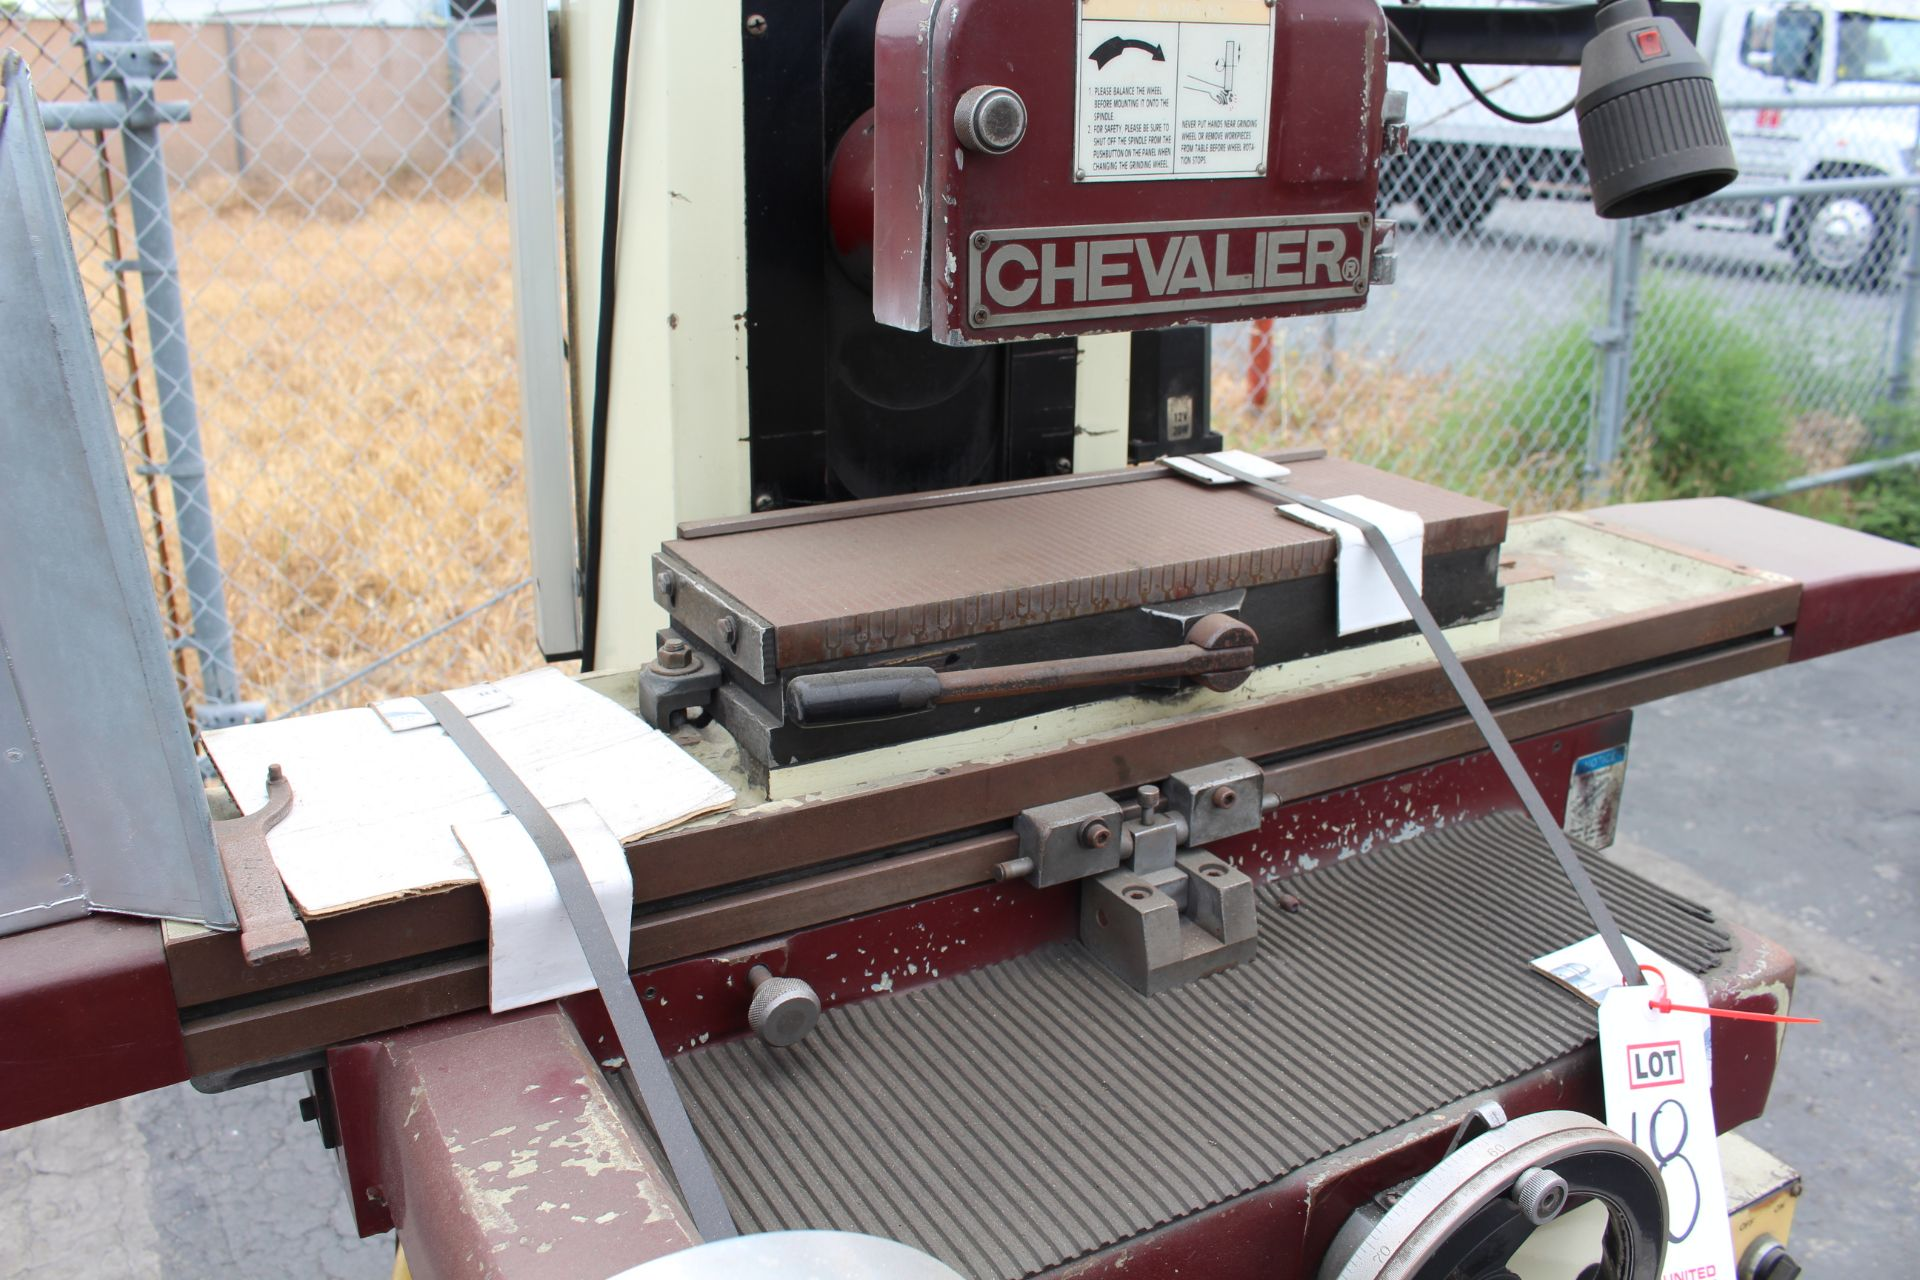 """CHEVALIER FSG-618M SURFACE GRINDER, 6"""" X 18"""" MAGNETIC CHUCK, ACU-RITE XY DRO, S/N A3837059 - Image 3 of 4"""